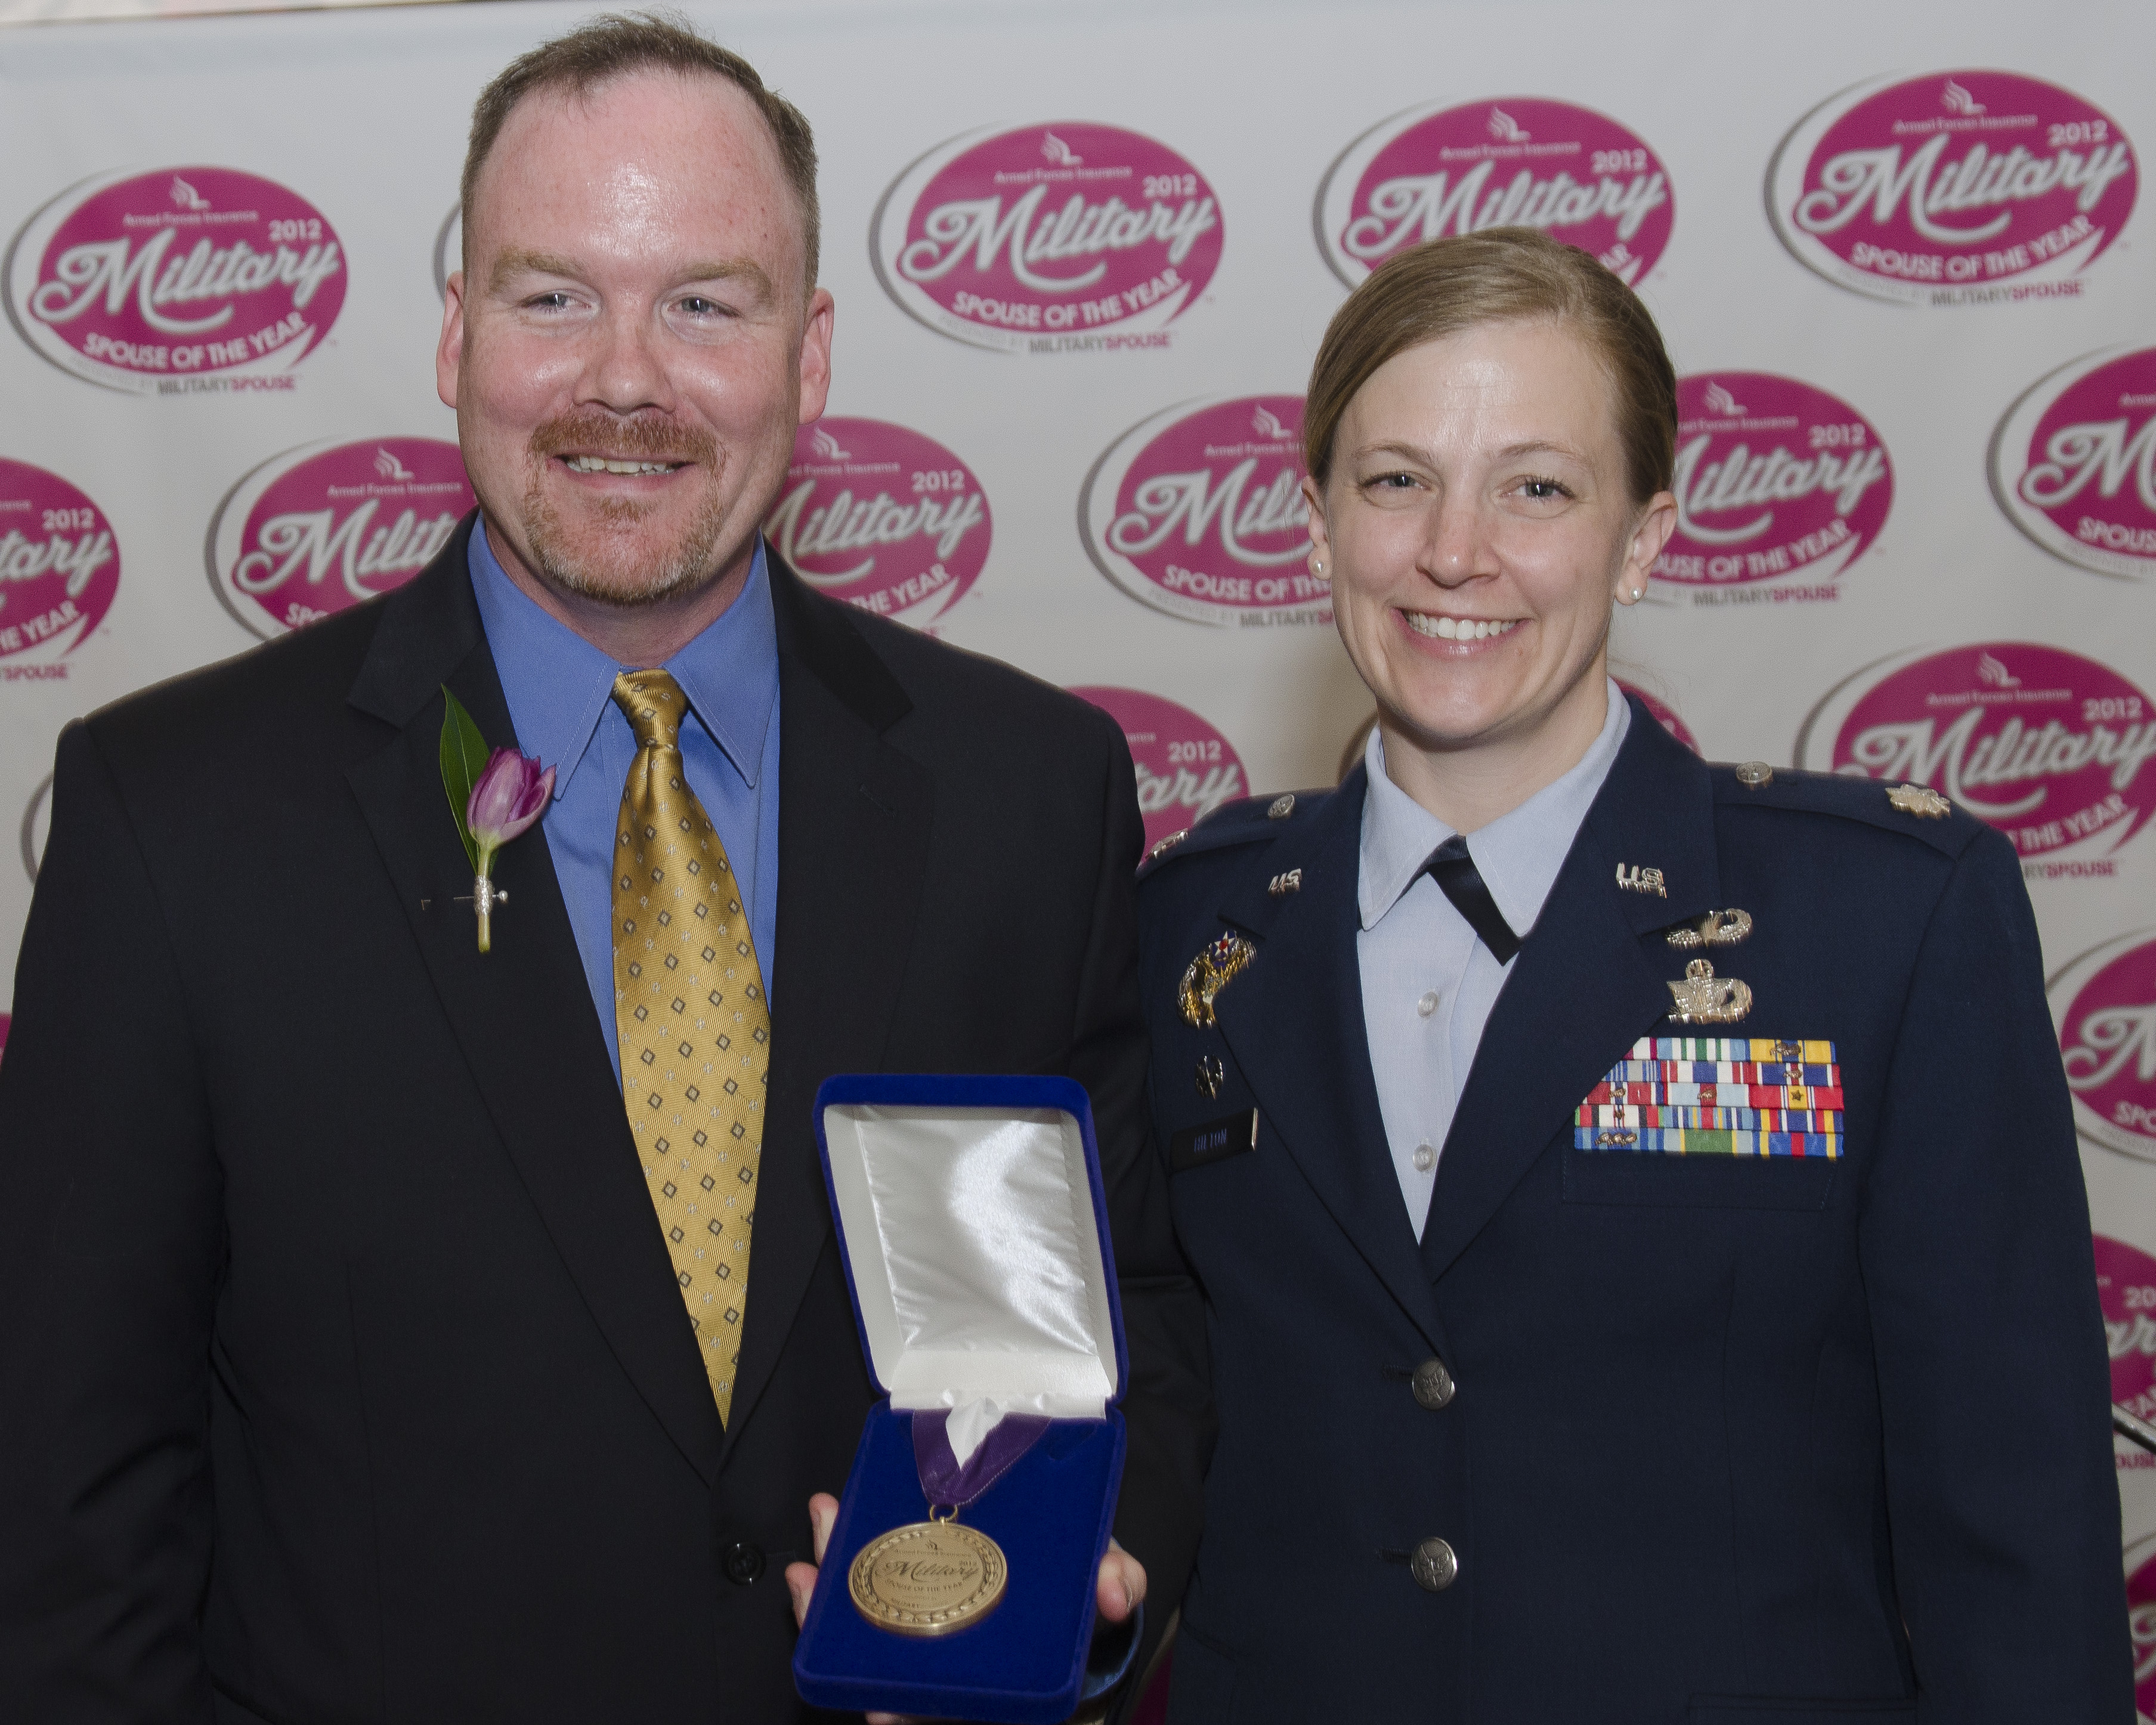 Jeremy Hilton and wife Renae after Jeremy won the 2012 Military Spouse of the Year Award